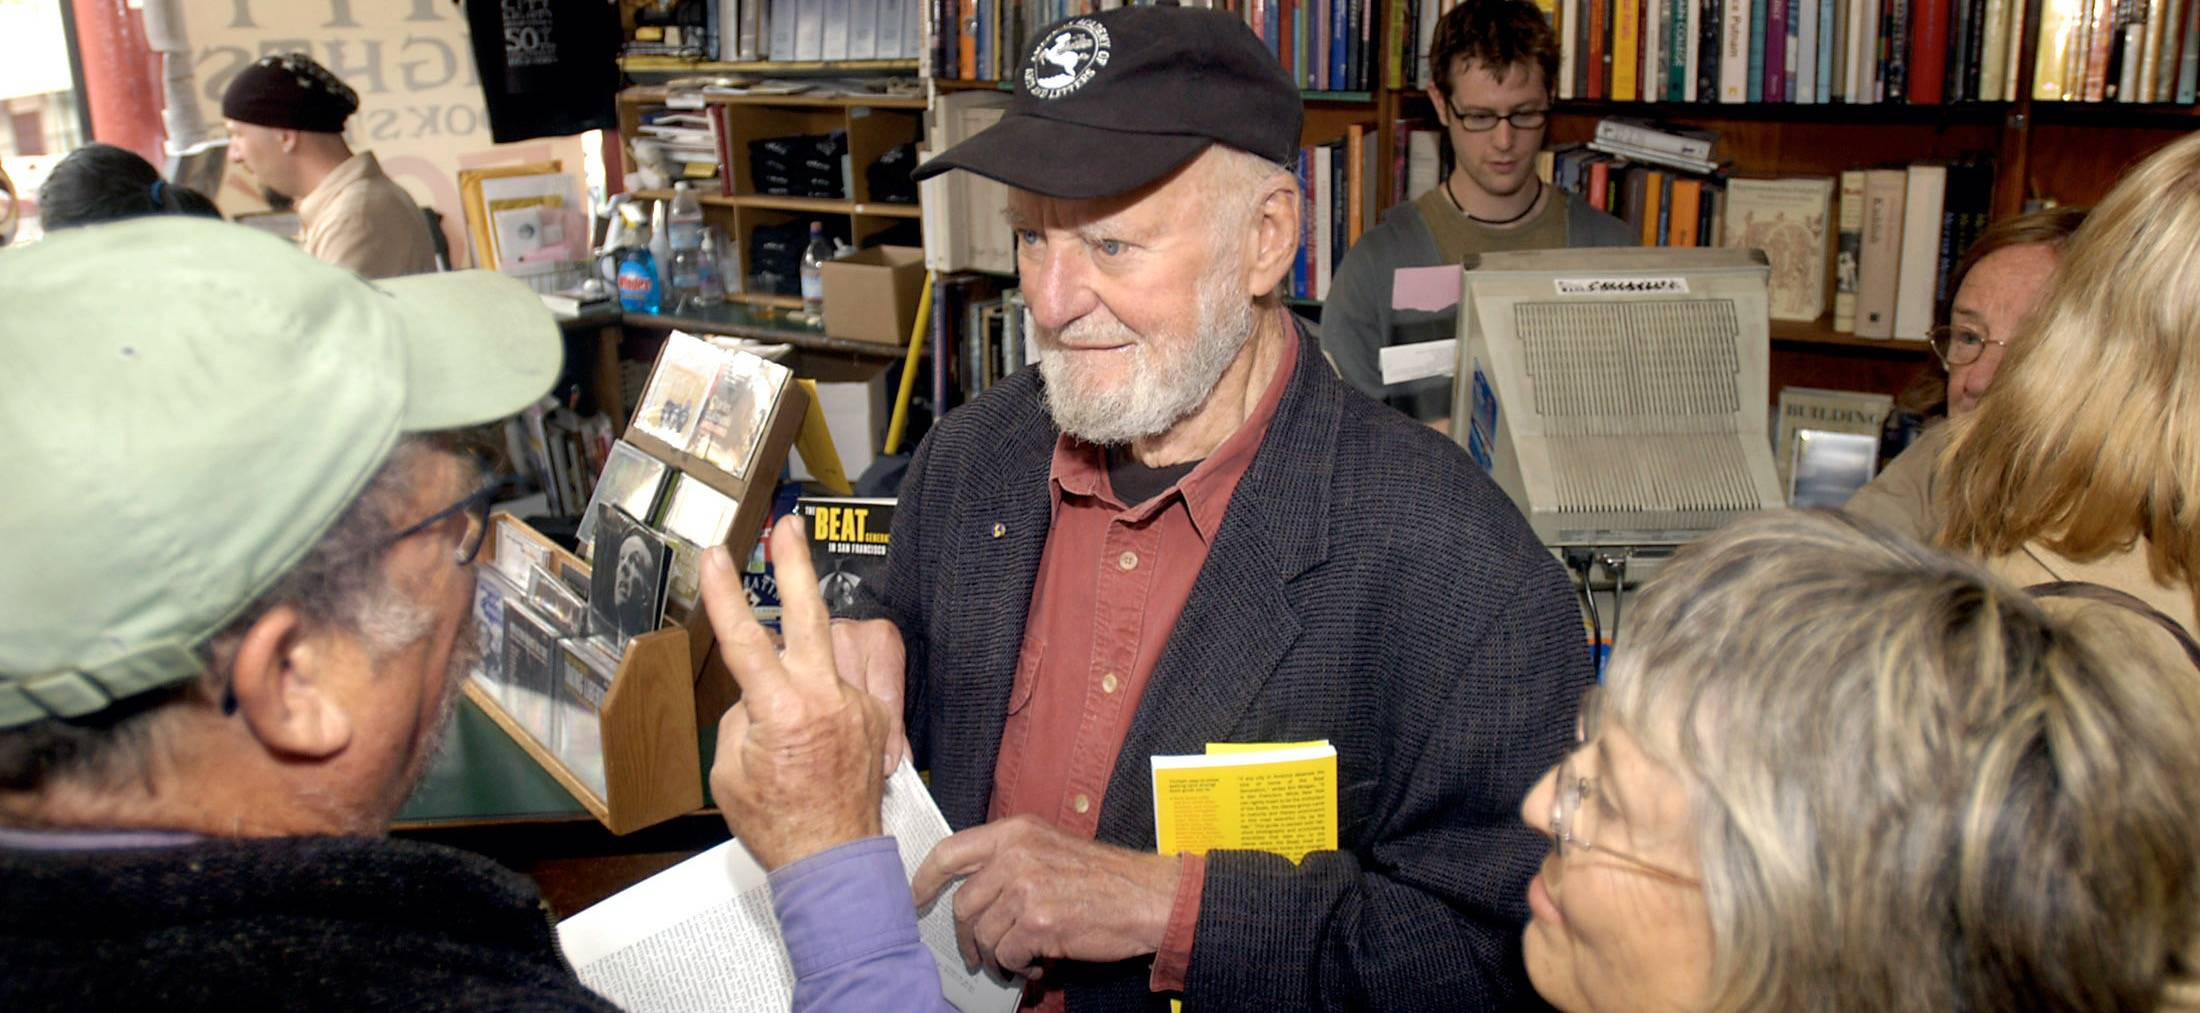 Lawrence Ferlinghetti, co-founder of San Francisco's City Lights Bookstore, makes his way through a crowd of well-wishers at the 50th anniversary of the store in 2003. (Thor Swift/FTWP)